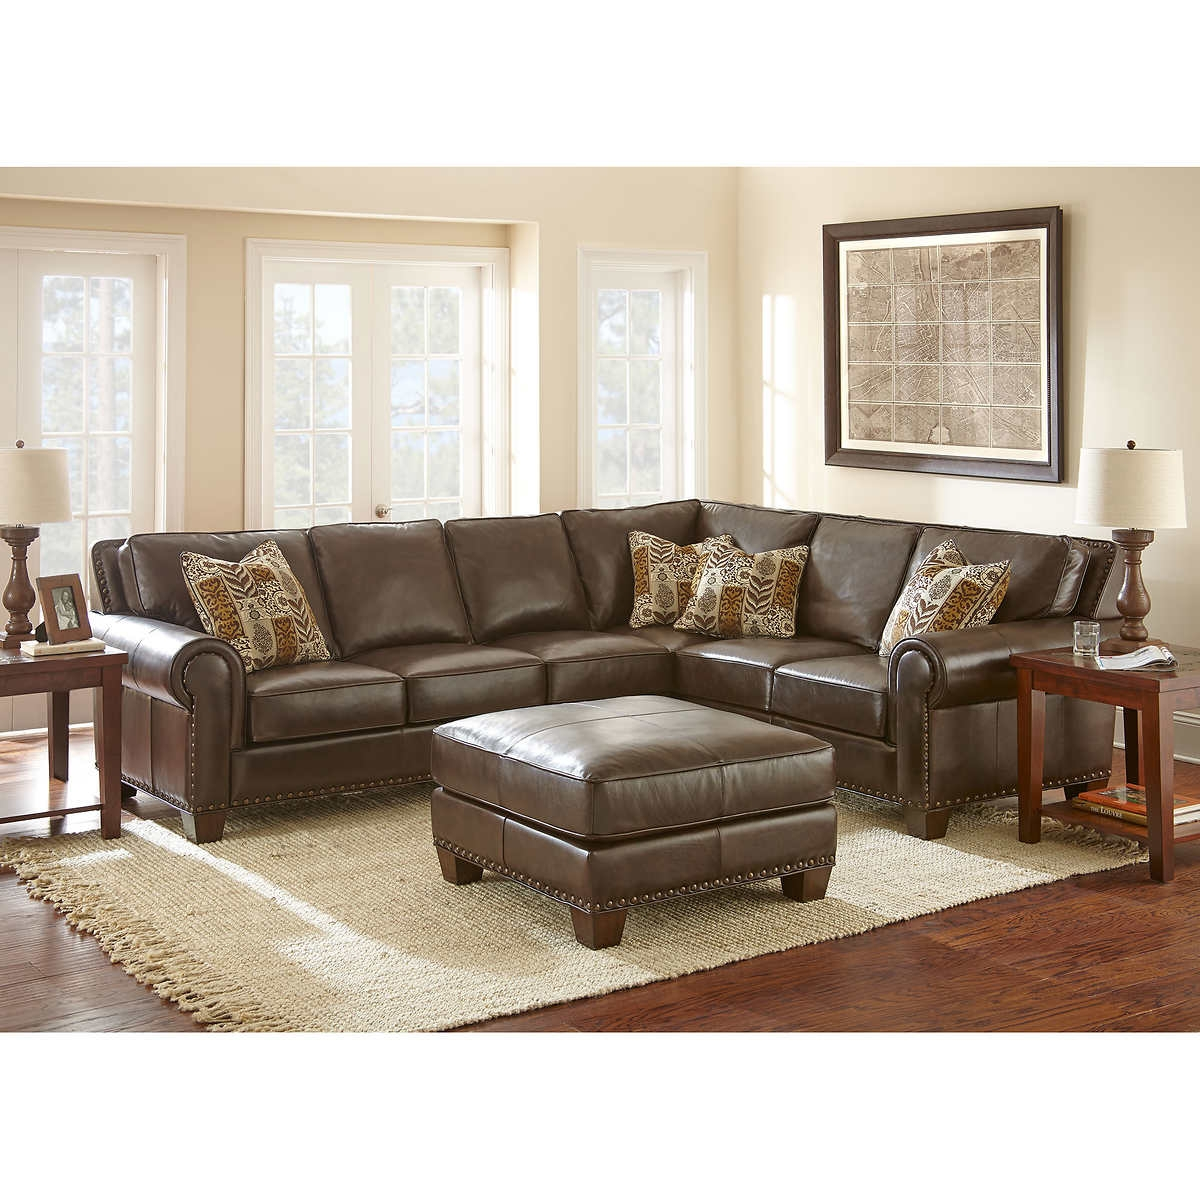 Curved Sectional Sofa Recliner Curved Couch Curved Sectional Sofa Pertaining To Curved Sectional Sofa With Recliner (Image 4 of 15)